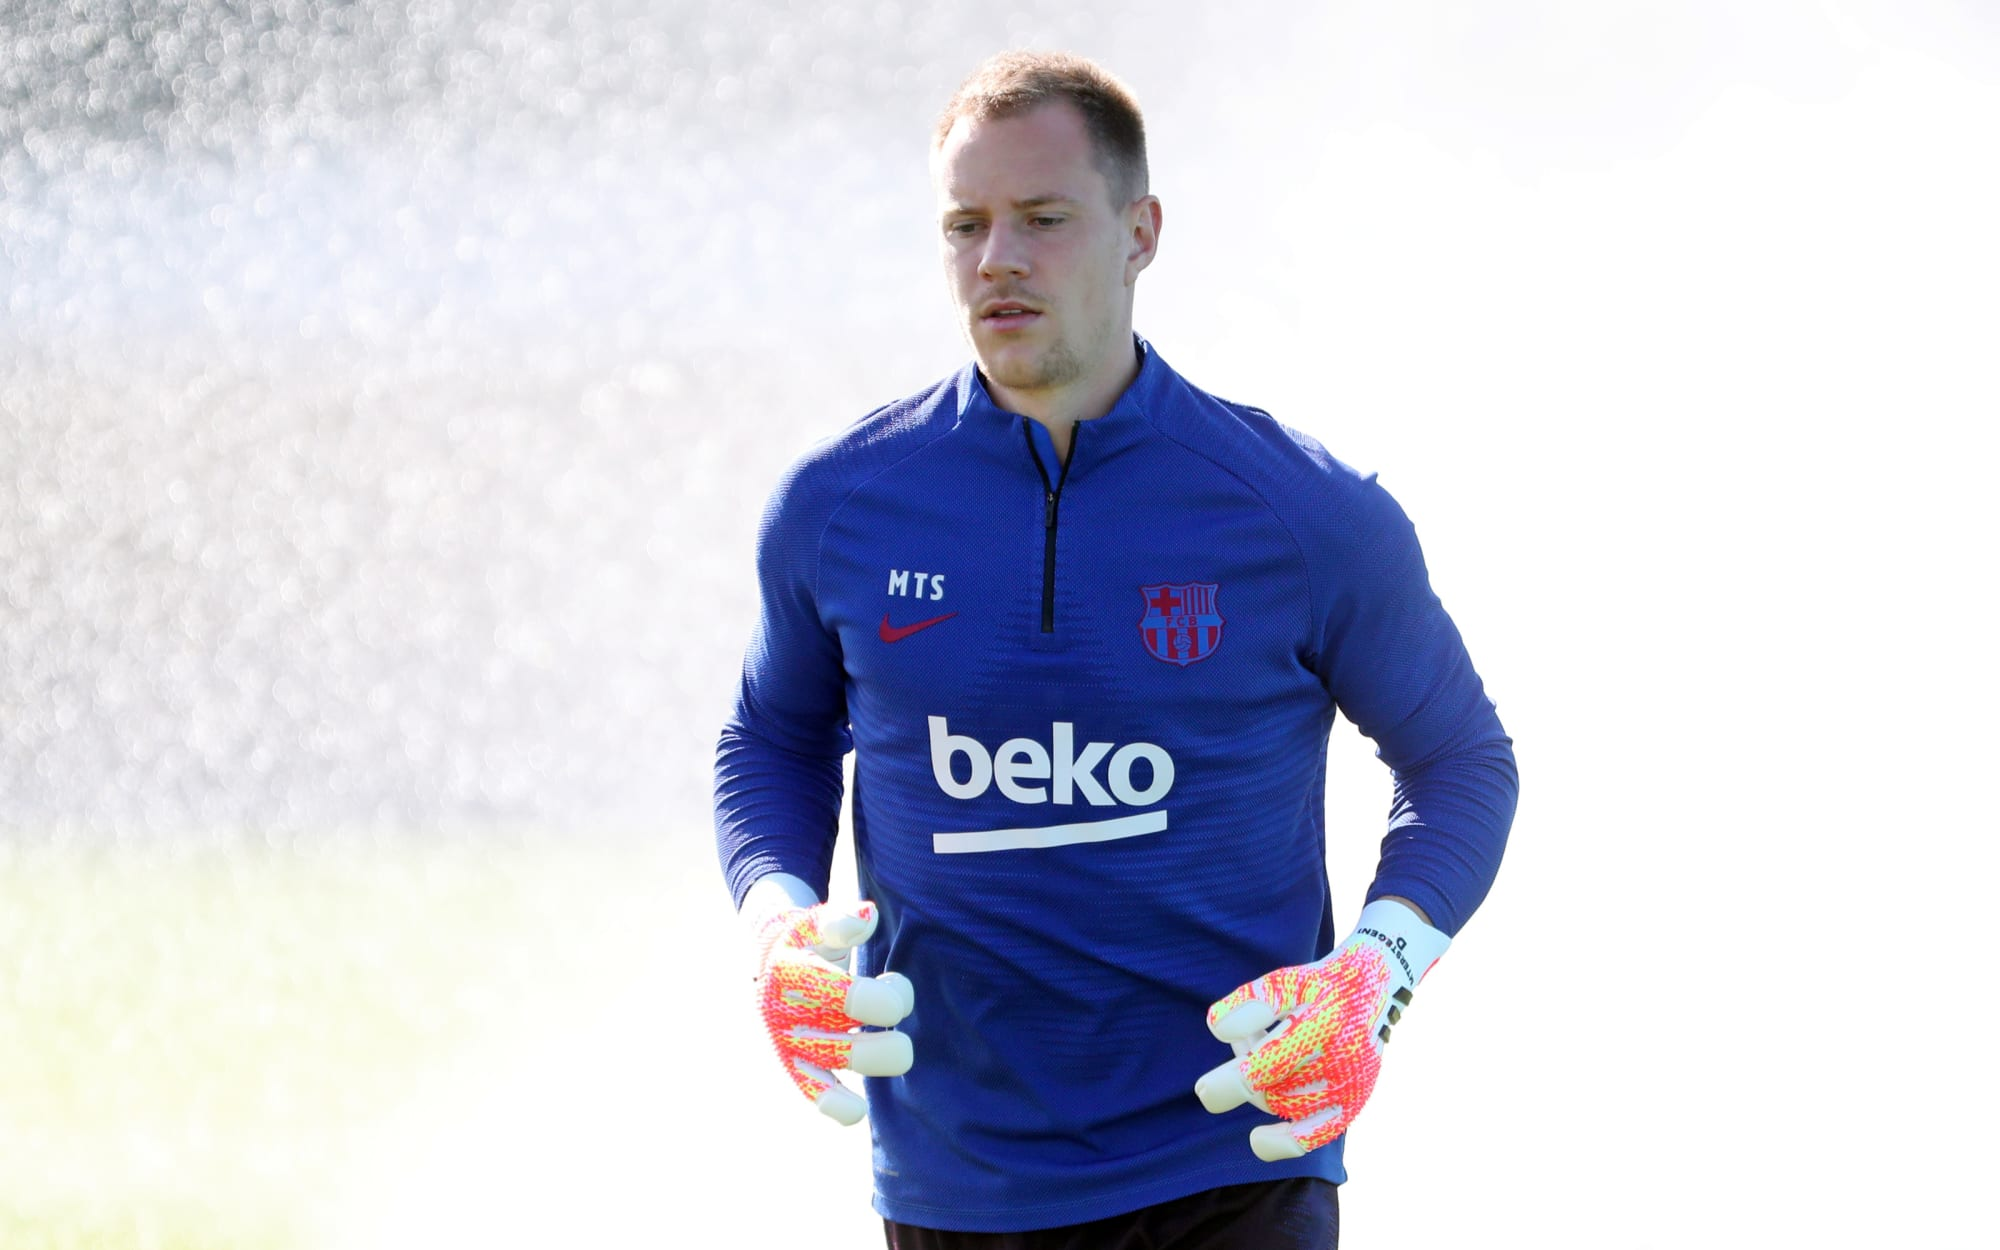 Ter Stegen receives a million dollar offer that will decide his future